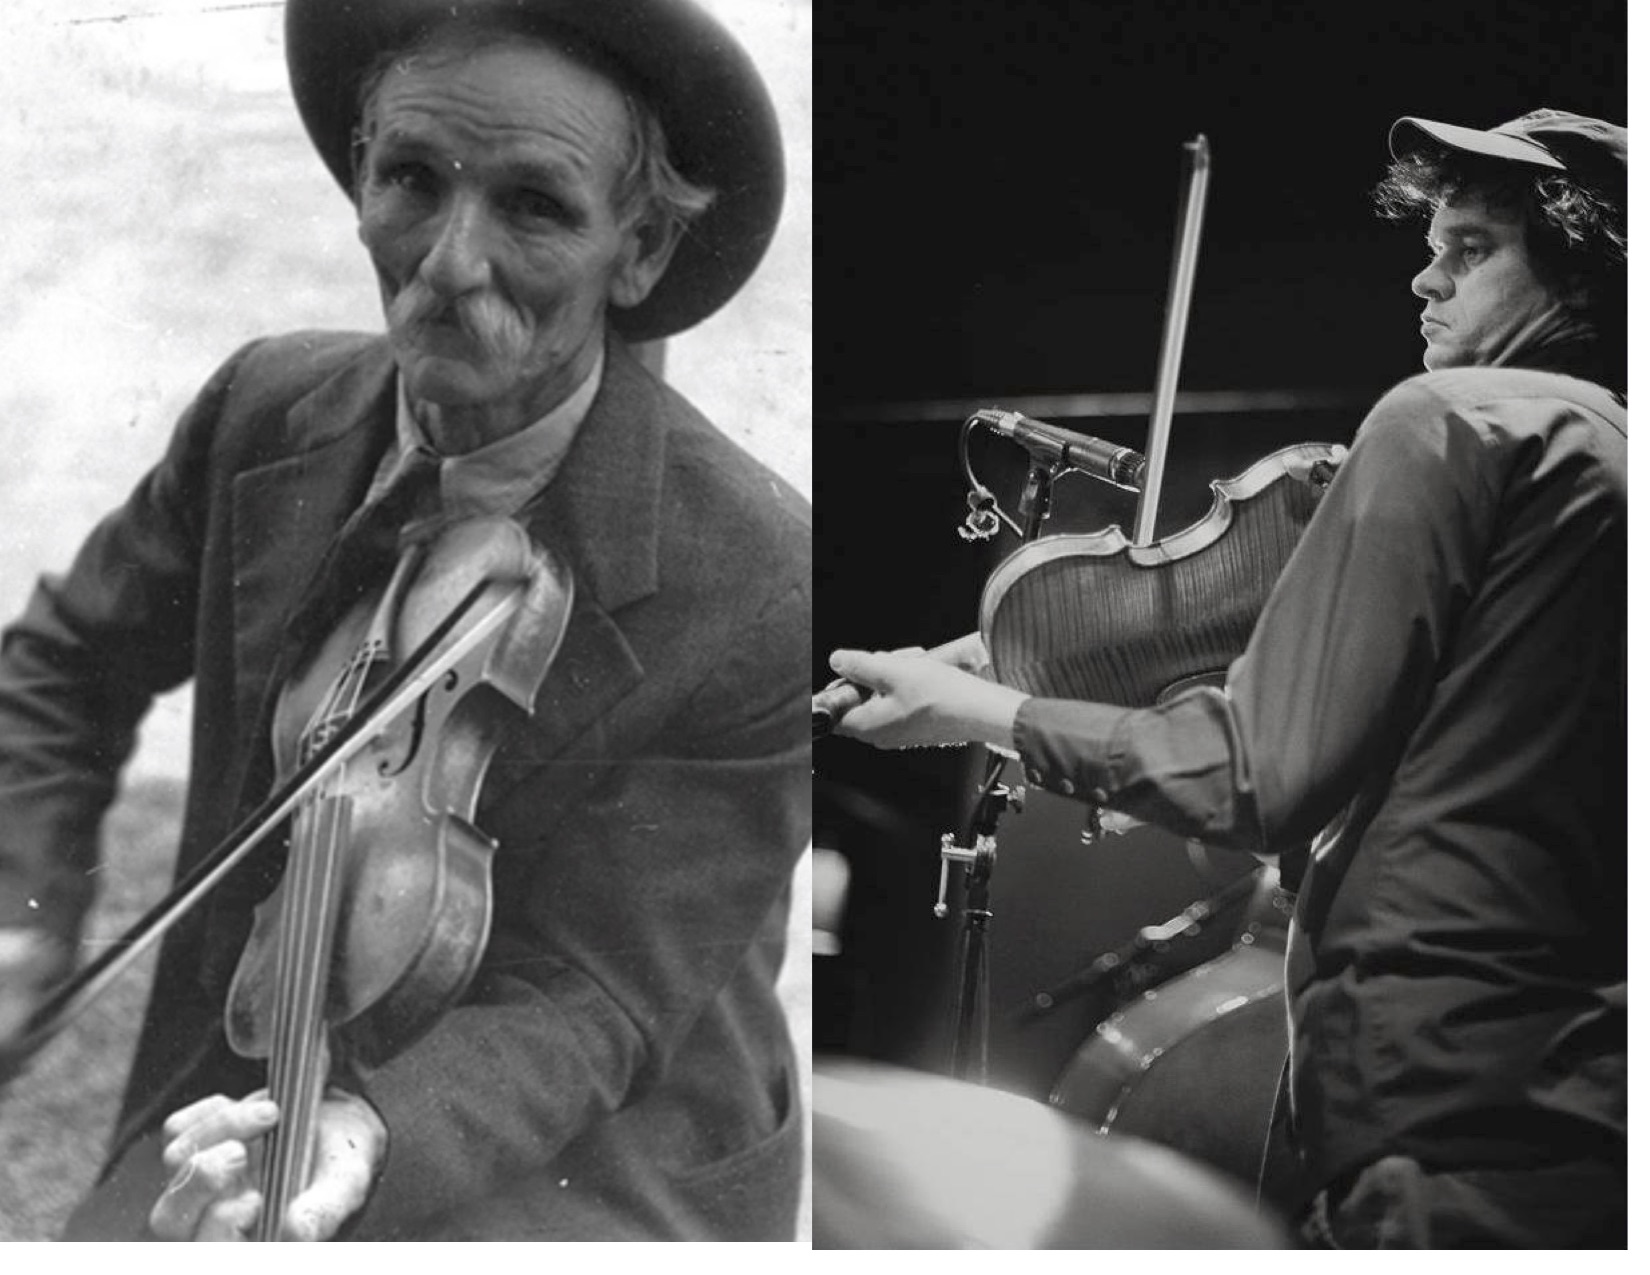 Caption: Fiddlin' Bill Hensley (L, Ben Shahn, Library of Congress) and Jason Cade (R, Jamie Derevere) represent two ends of our story this week: the historic old time players whose music is preserved in early recordings, and today's performers interpreting the old